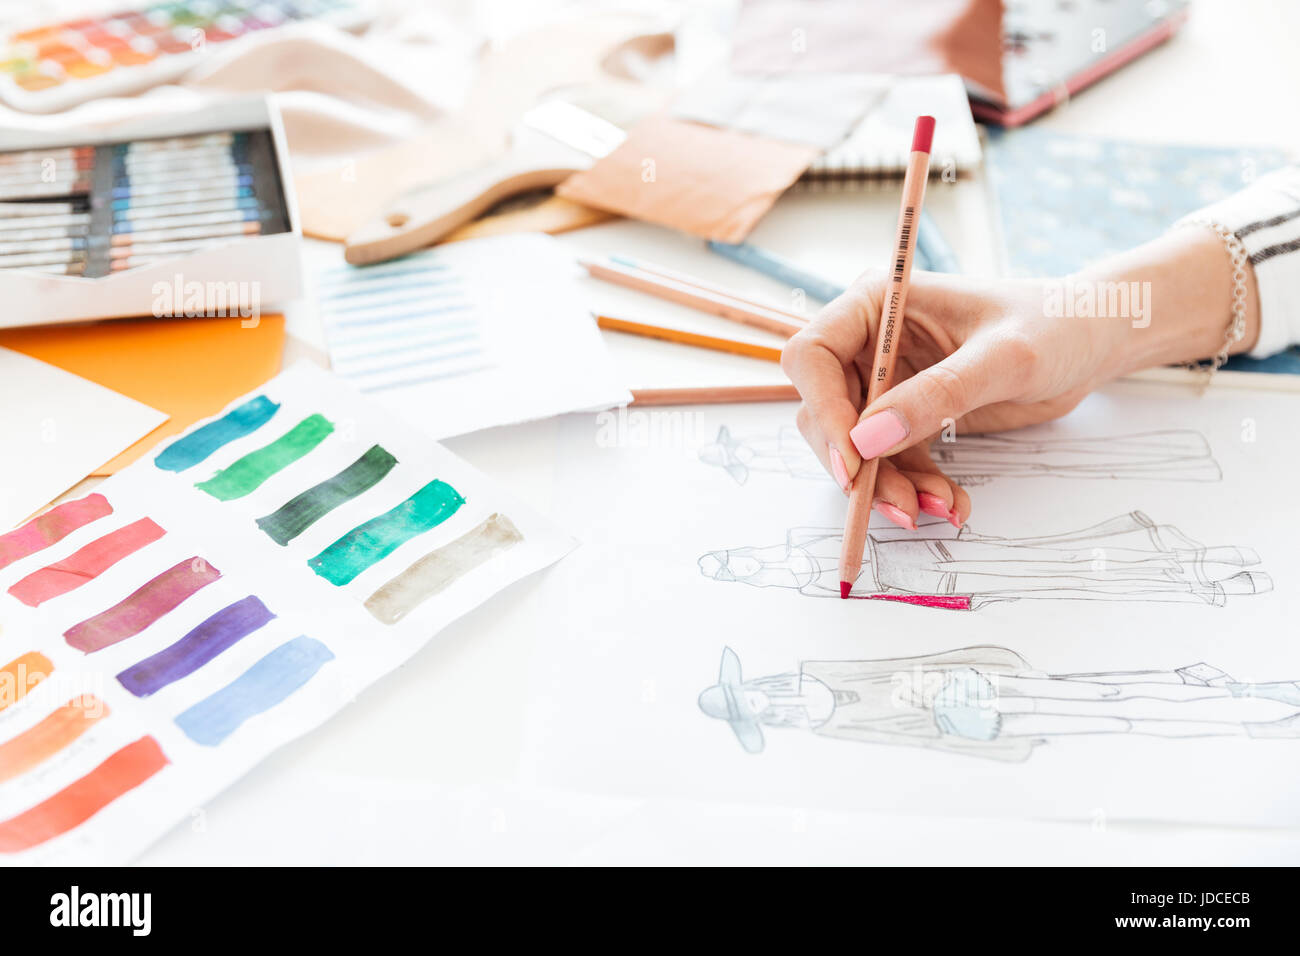 Female Fashion Designer Working On Sketches With Paint In Studio Stock Photo Alamy